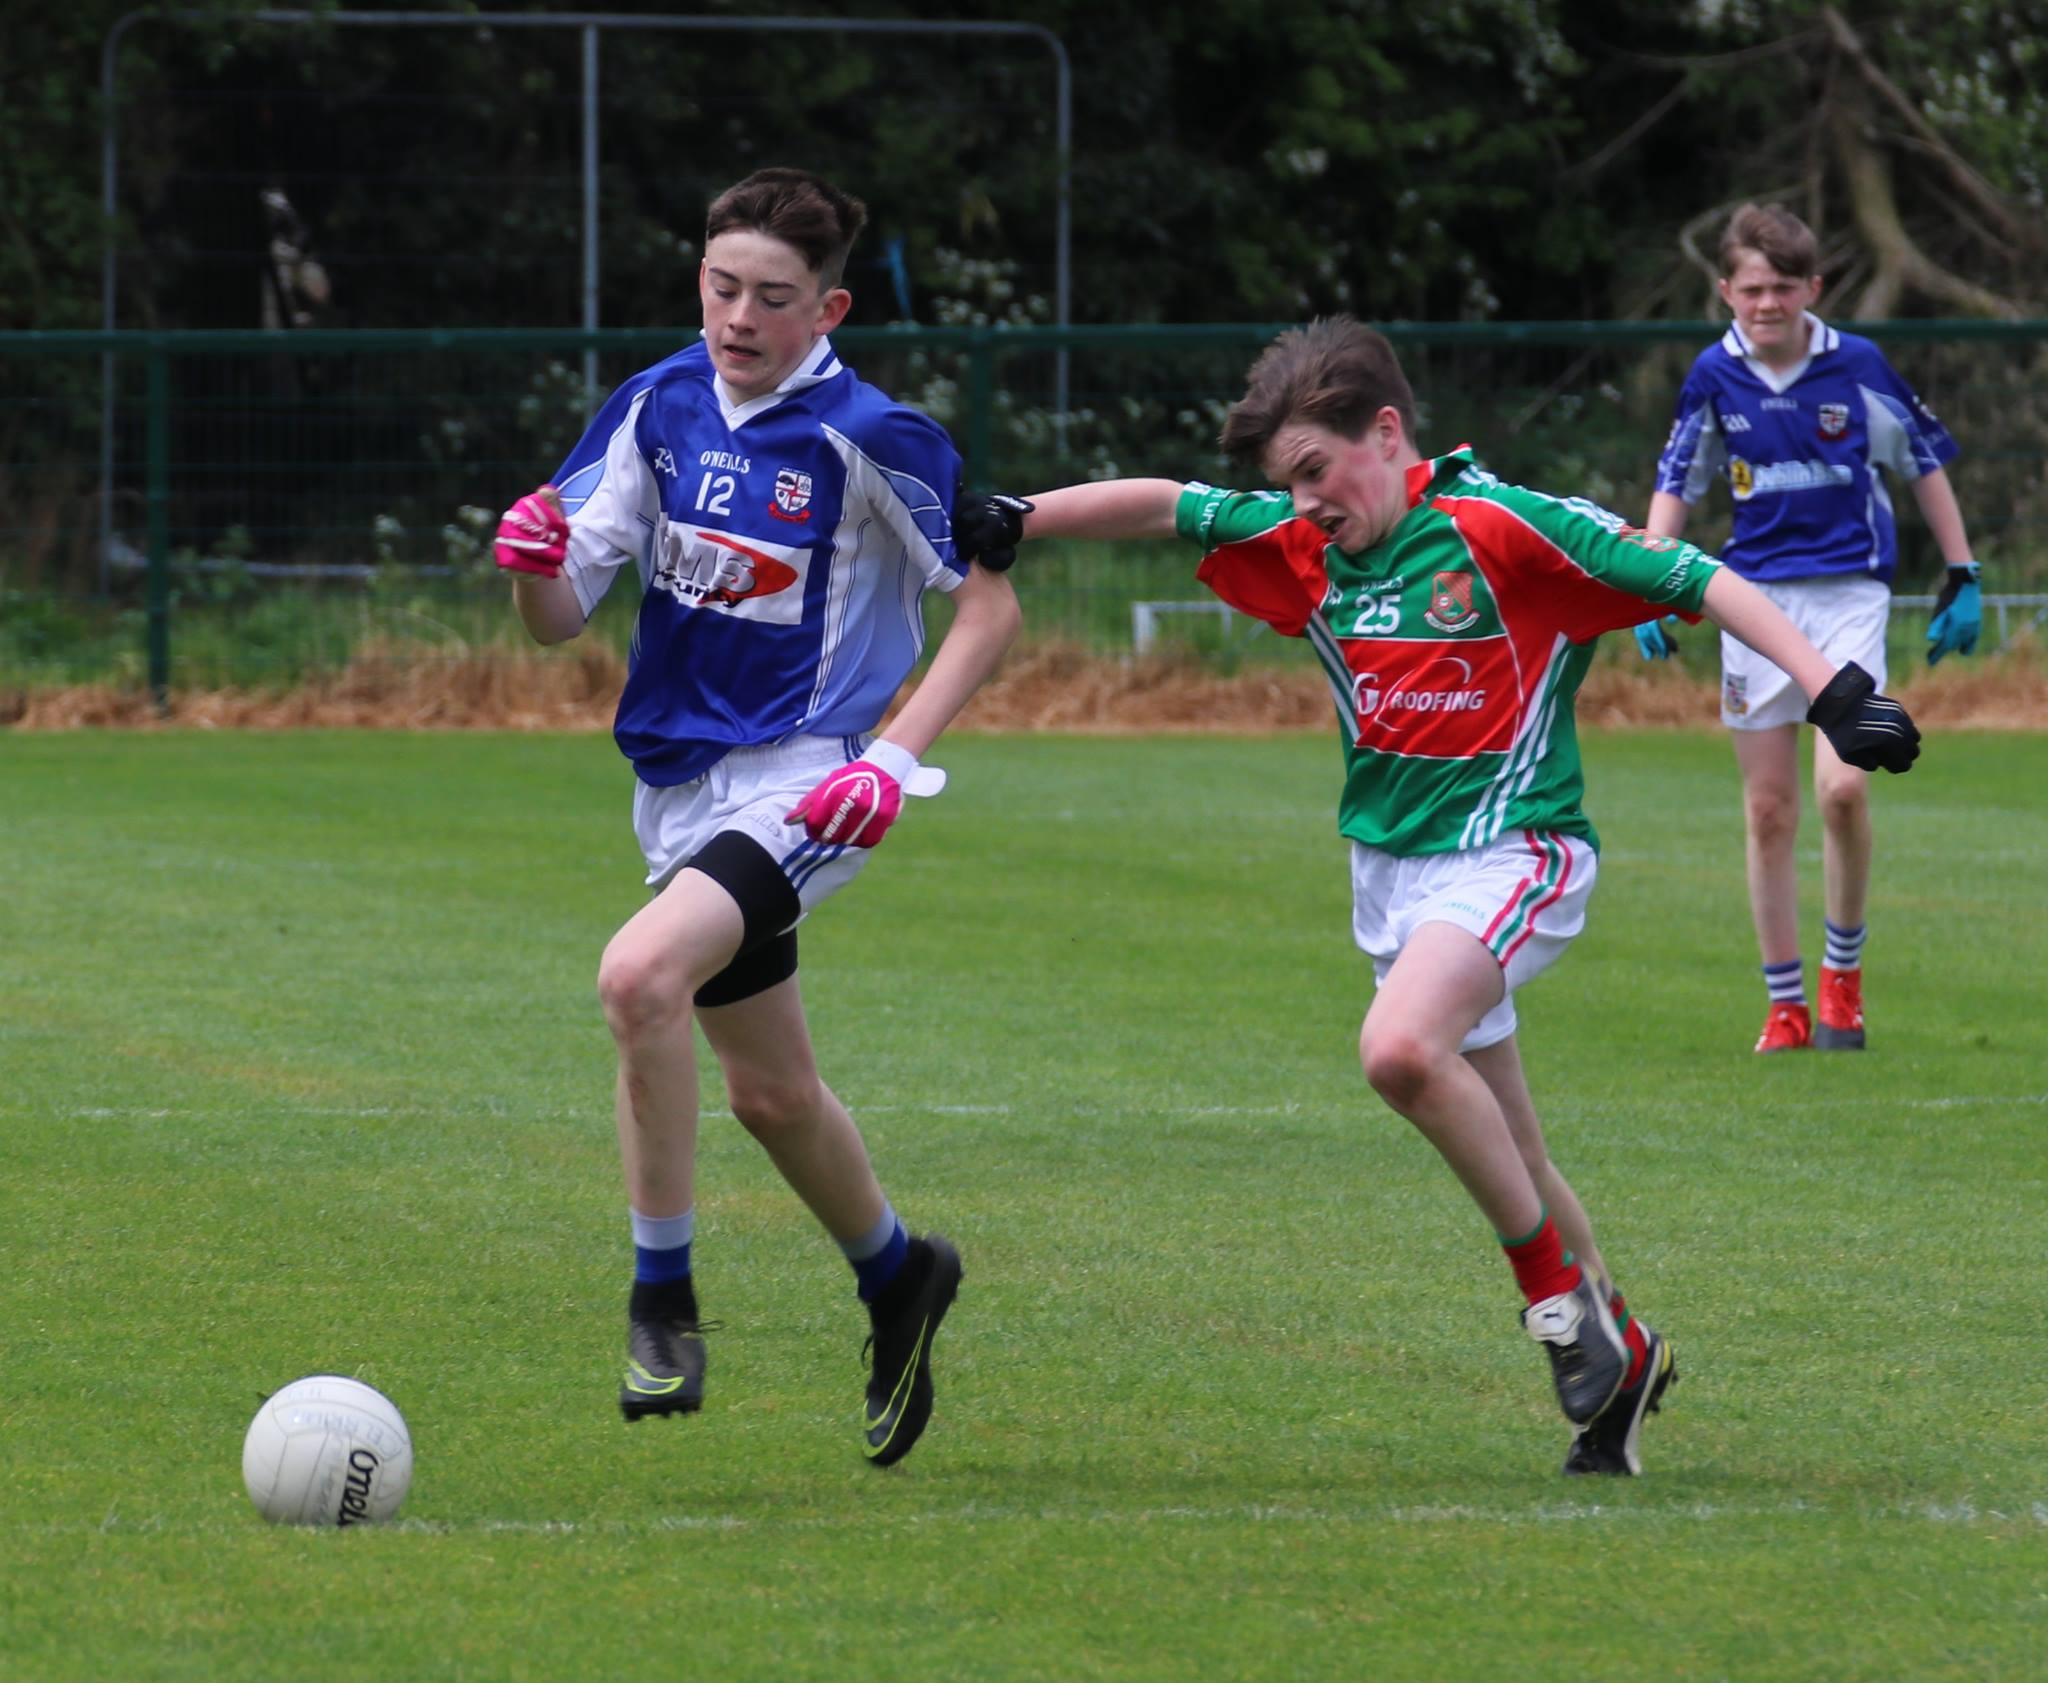 Suncroft v Celbridge Feile A Shield 6